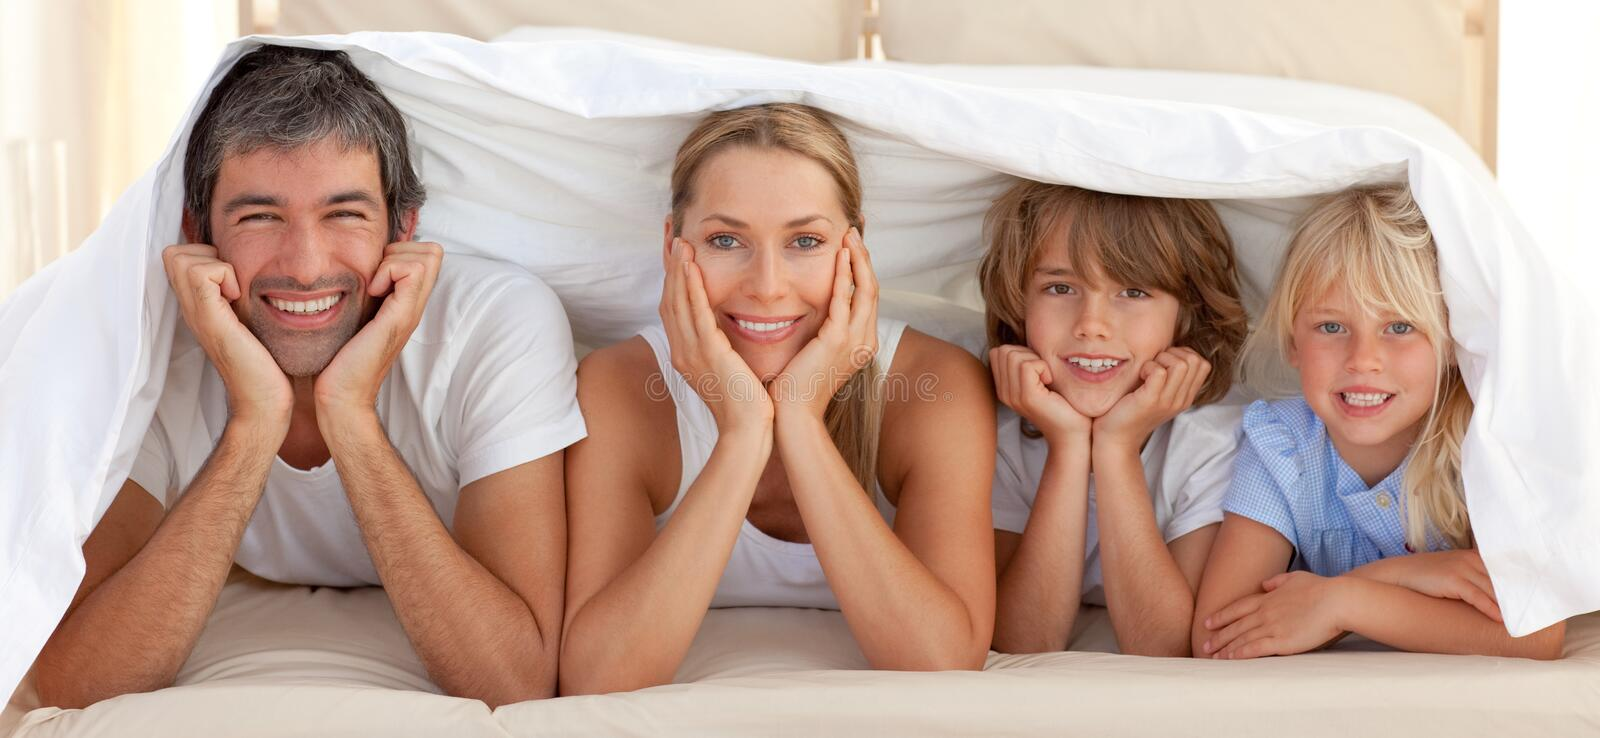 Happy family lying under a blanket royalty free stock image